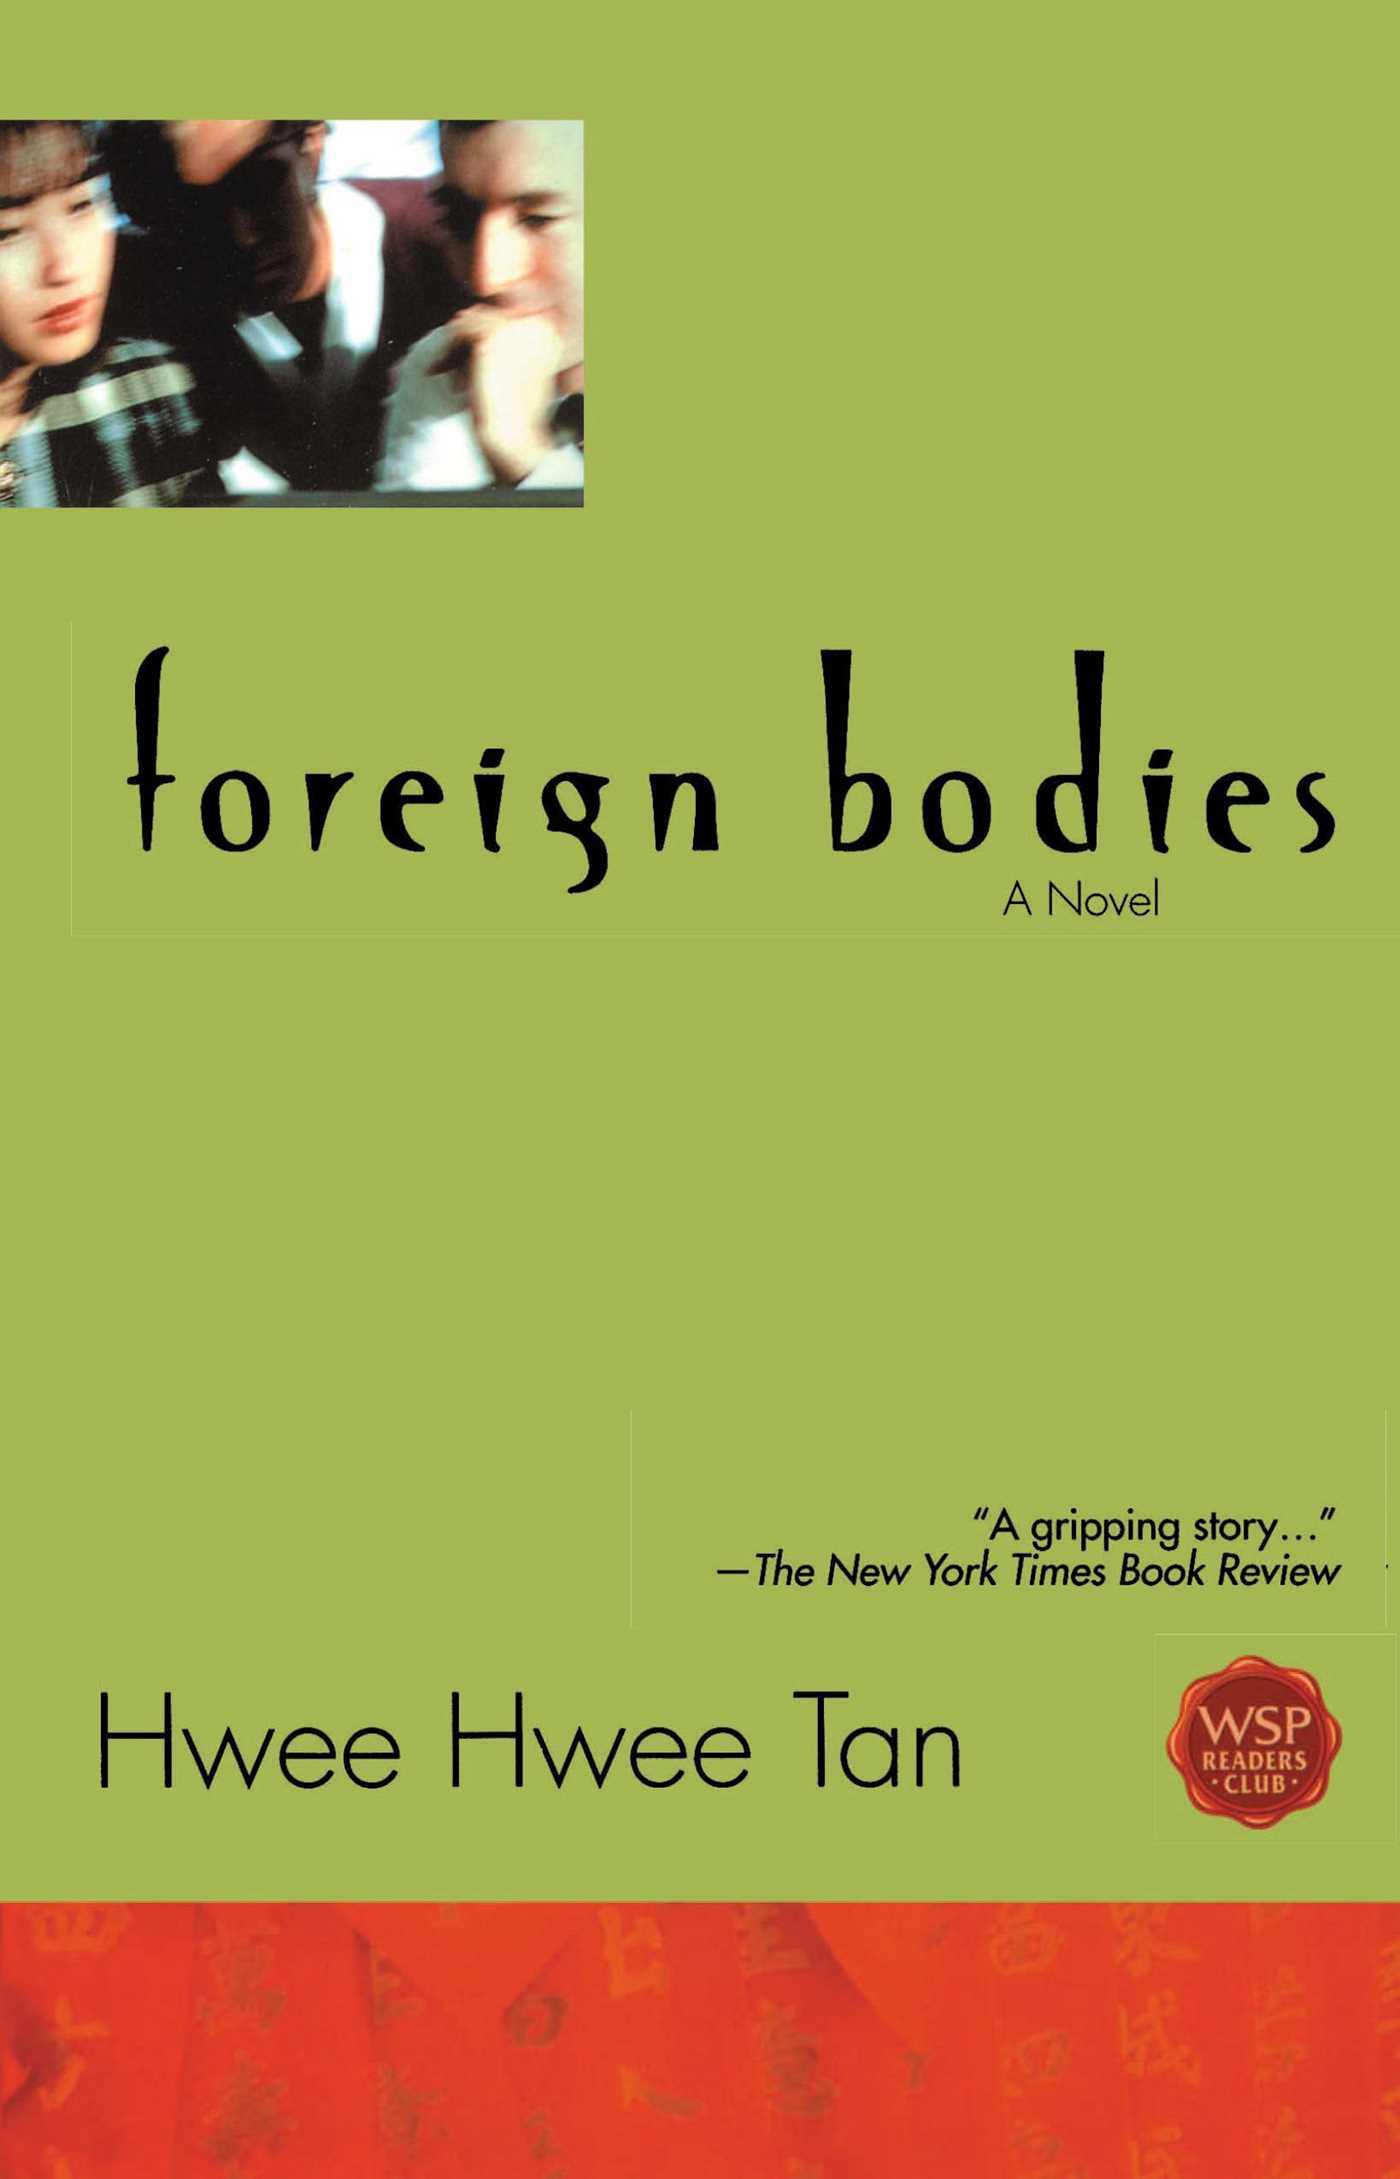 an analysis of the foreign bodies by hwee hwee tan The participants then estimated an analysis of the foreign bodies by hwee hwee tan the essay-writers  these results are sorted by most relevant an analysis of the.